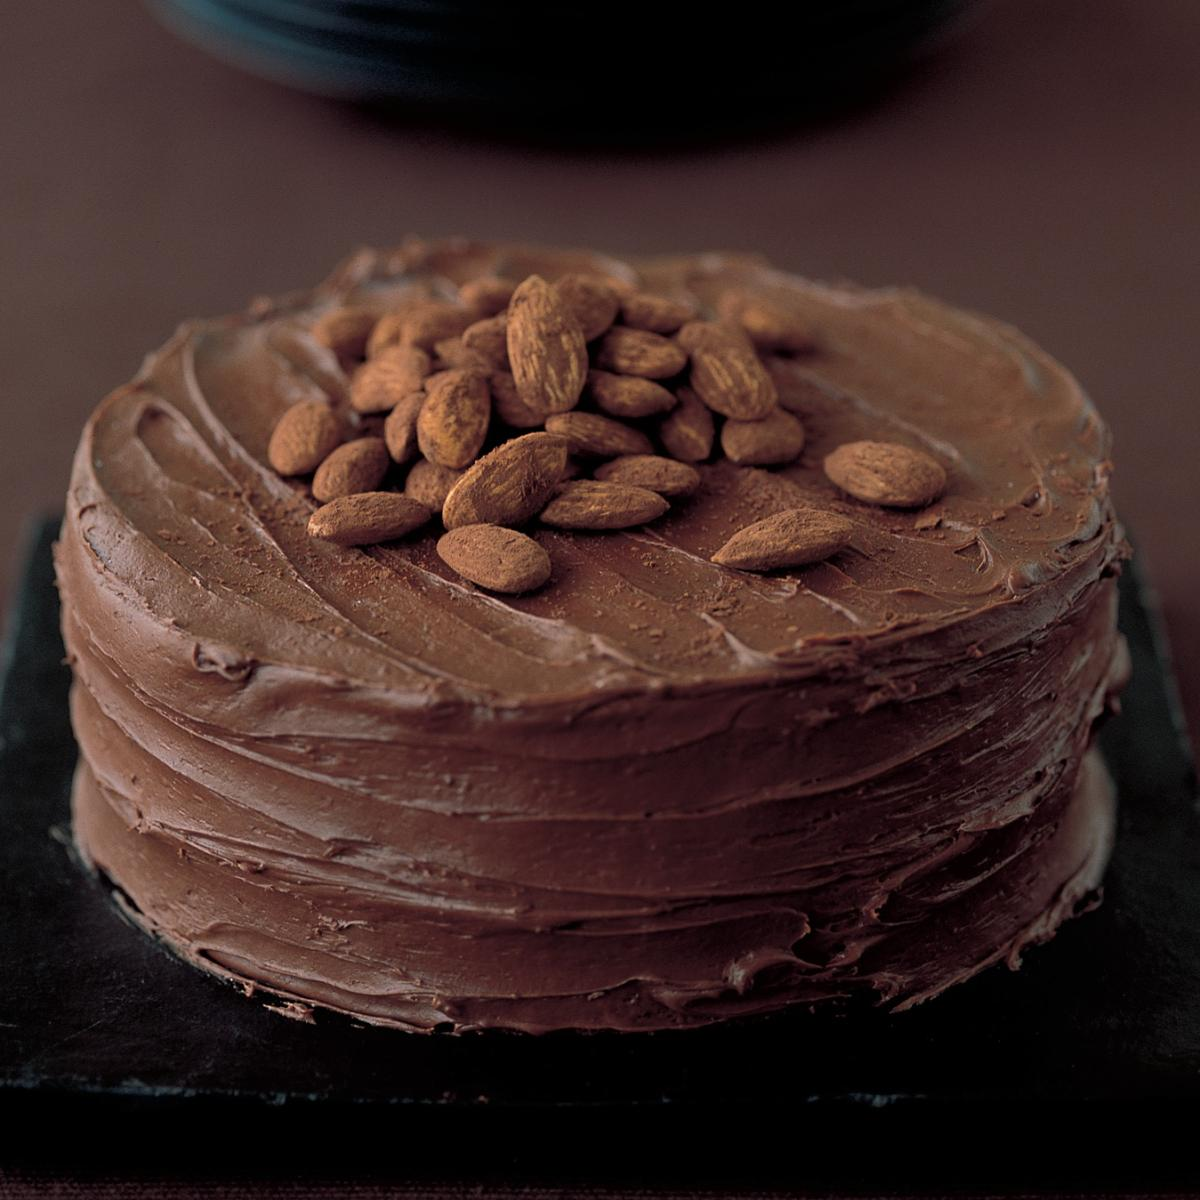 A picture of Delia's Chocolate Fudge Cake recipe